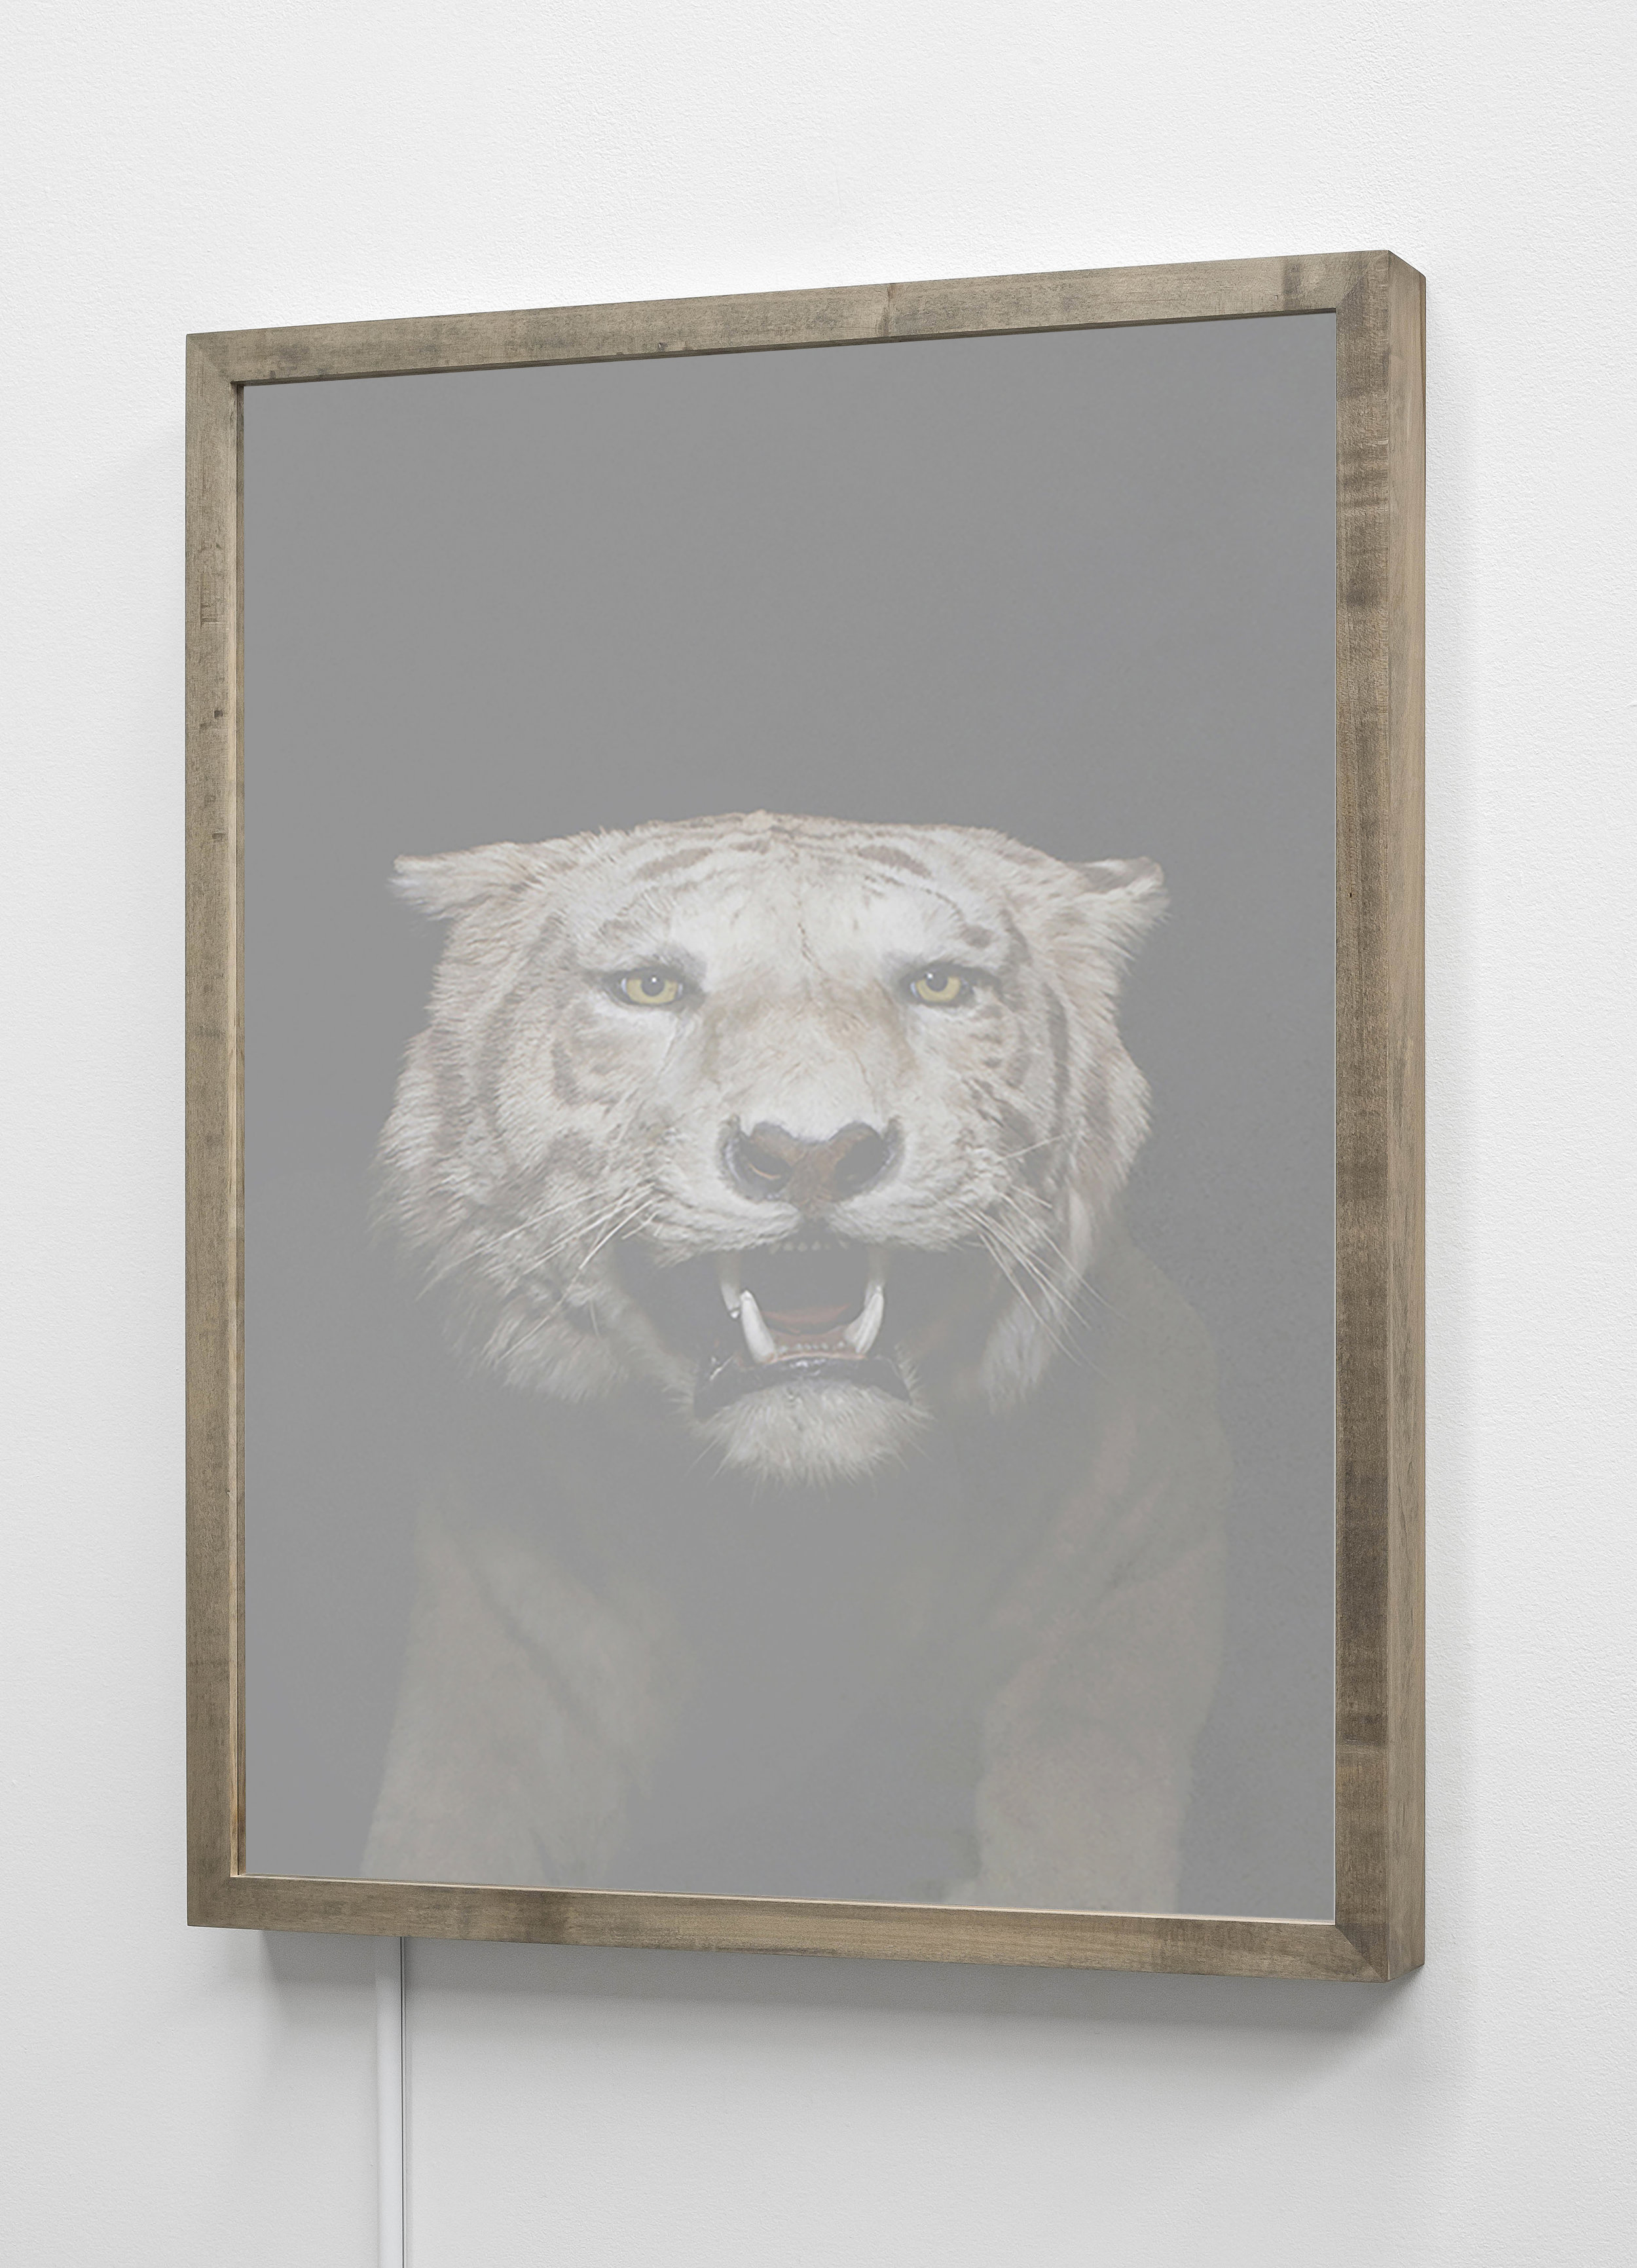 CHRISTINA SEELY  Siberian Tiger,  Panthera tigris altaica - Endangered Kinetic Mirrored Lightbox  Available sizes: 30 x 24 in | Edition of 3 + 1AP 20 x 16 in | Edition of 3 + 1AP